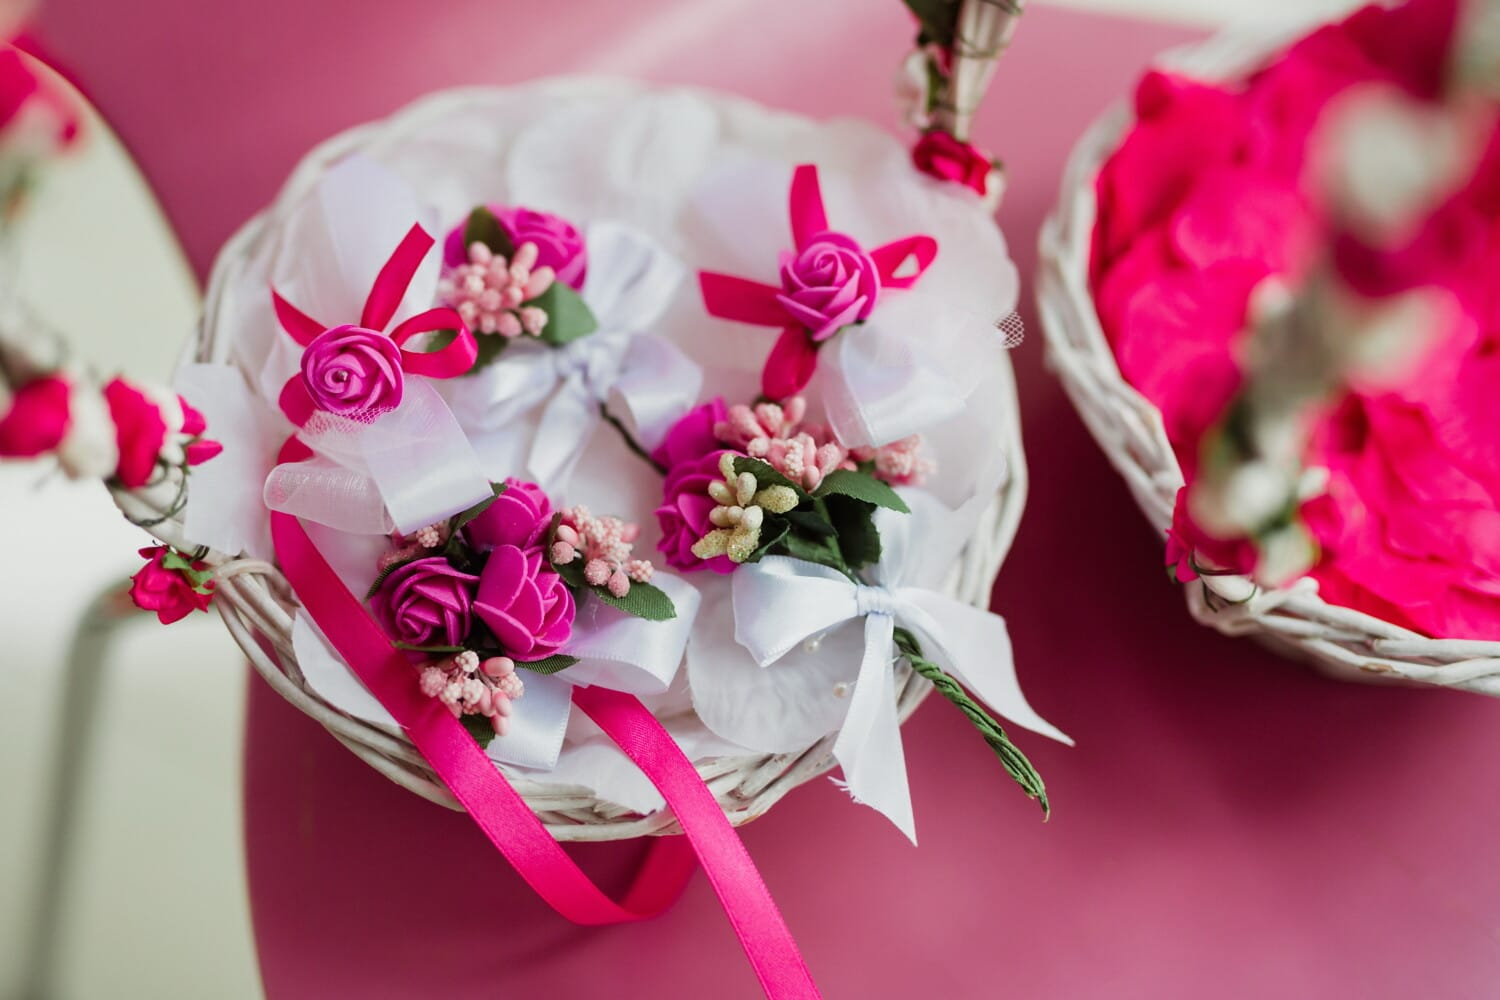 roses, Valentine's day, decoration, arrangement, bouquet, rose, pink, flower, romance, flowers